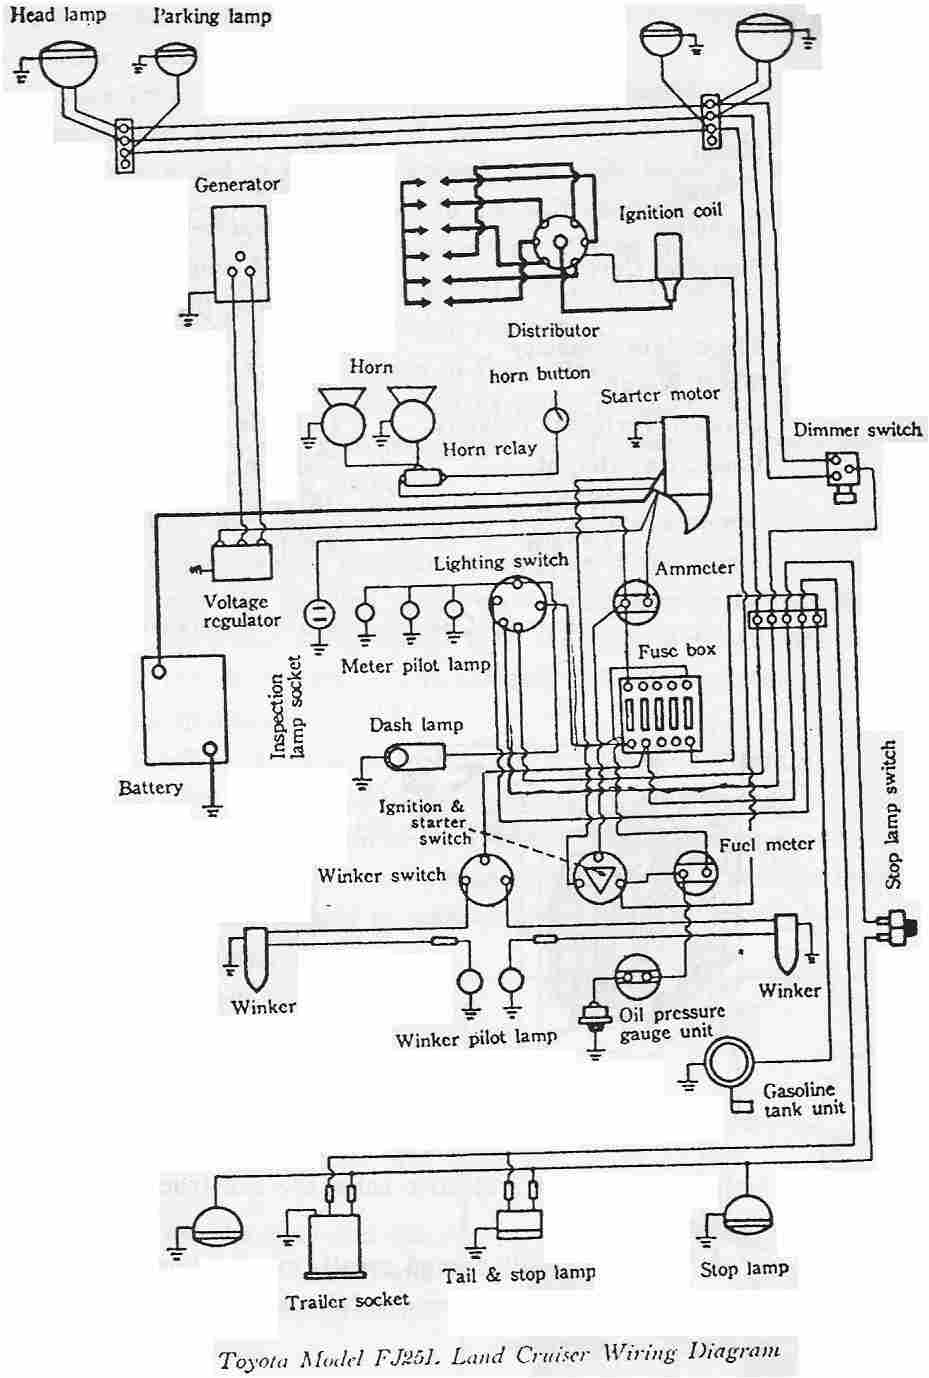 ... Toyota Land Cruiser FJ25 Electrical Wiring Diagram wiring diagram for  toro proline 724 z lawnsite readingrat toro ignition switch ...